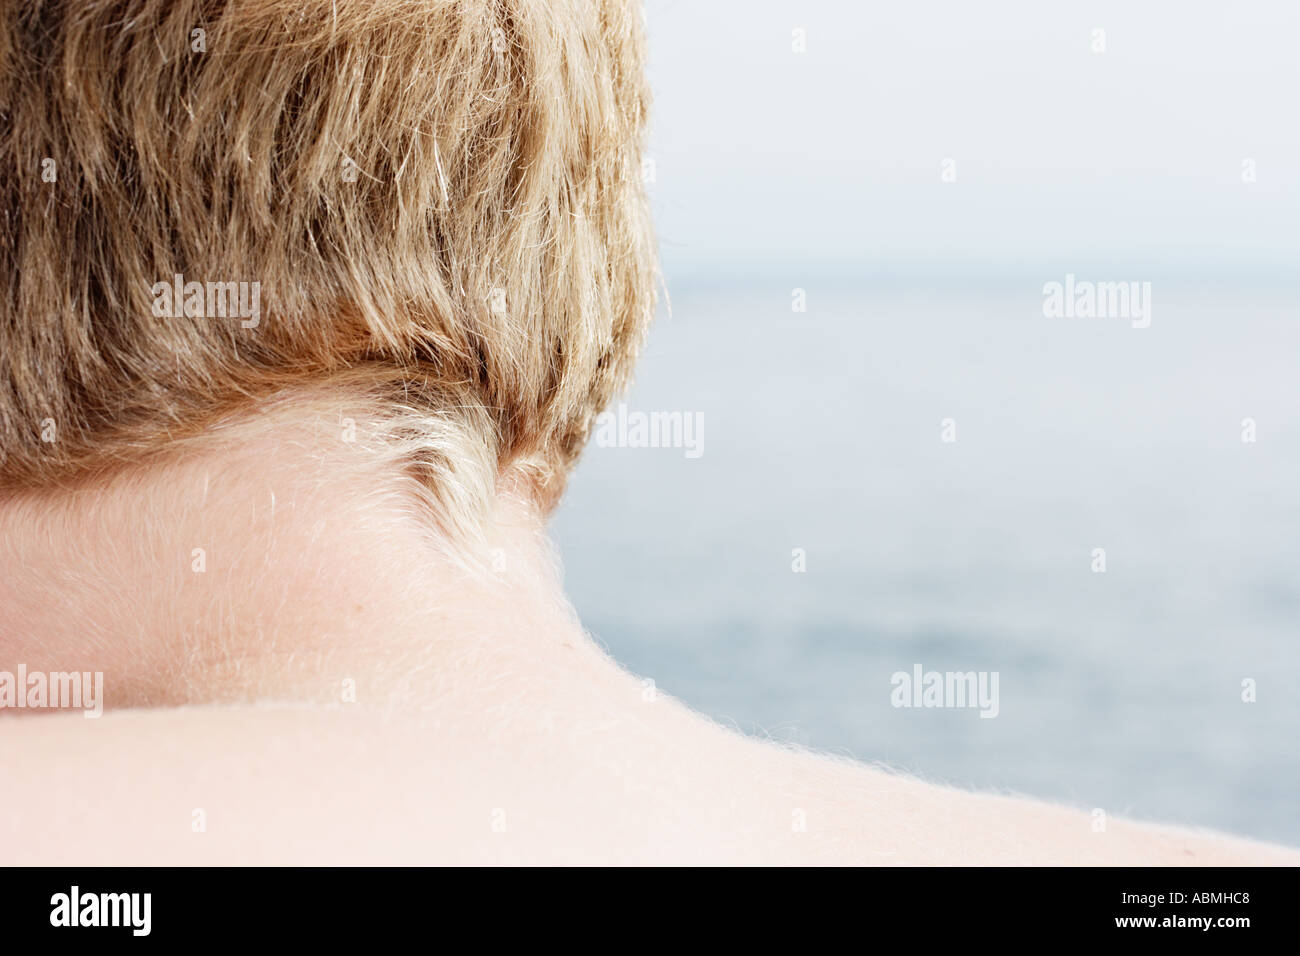 Rear View Of Young Boy And Sea - Stock Image